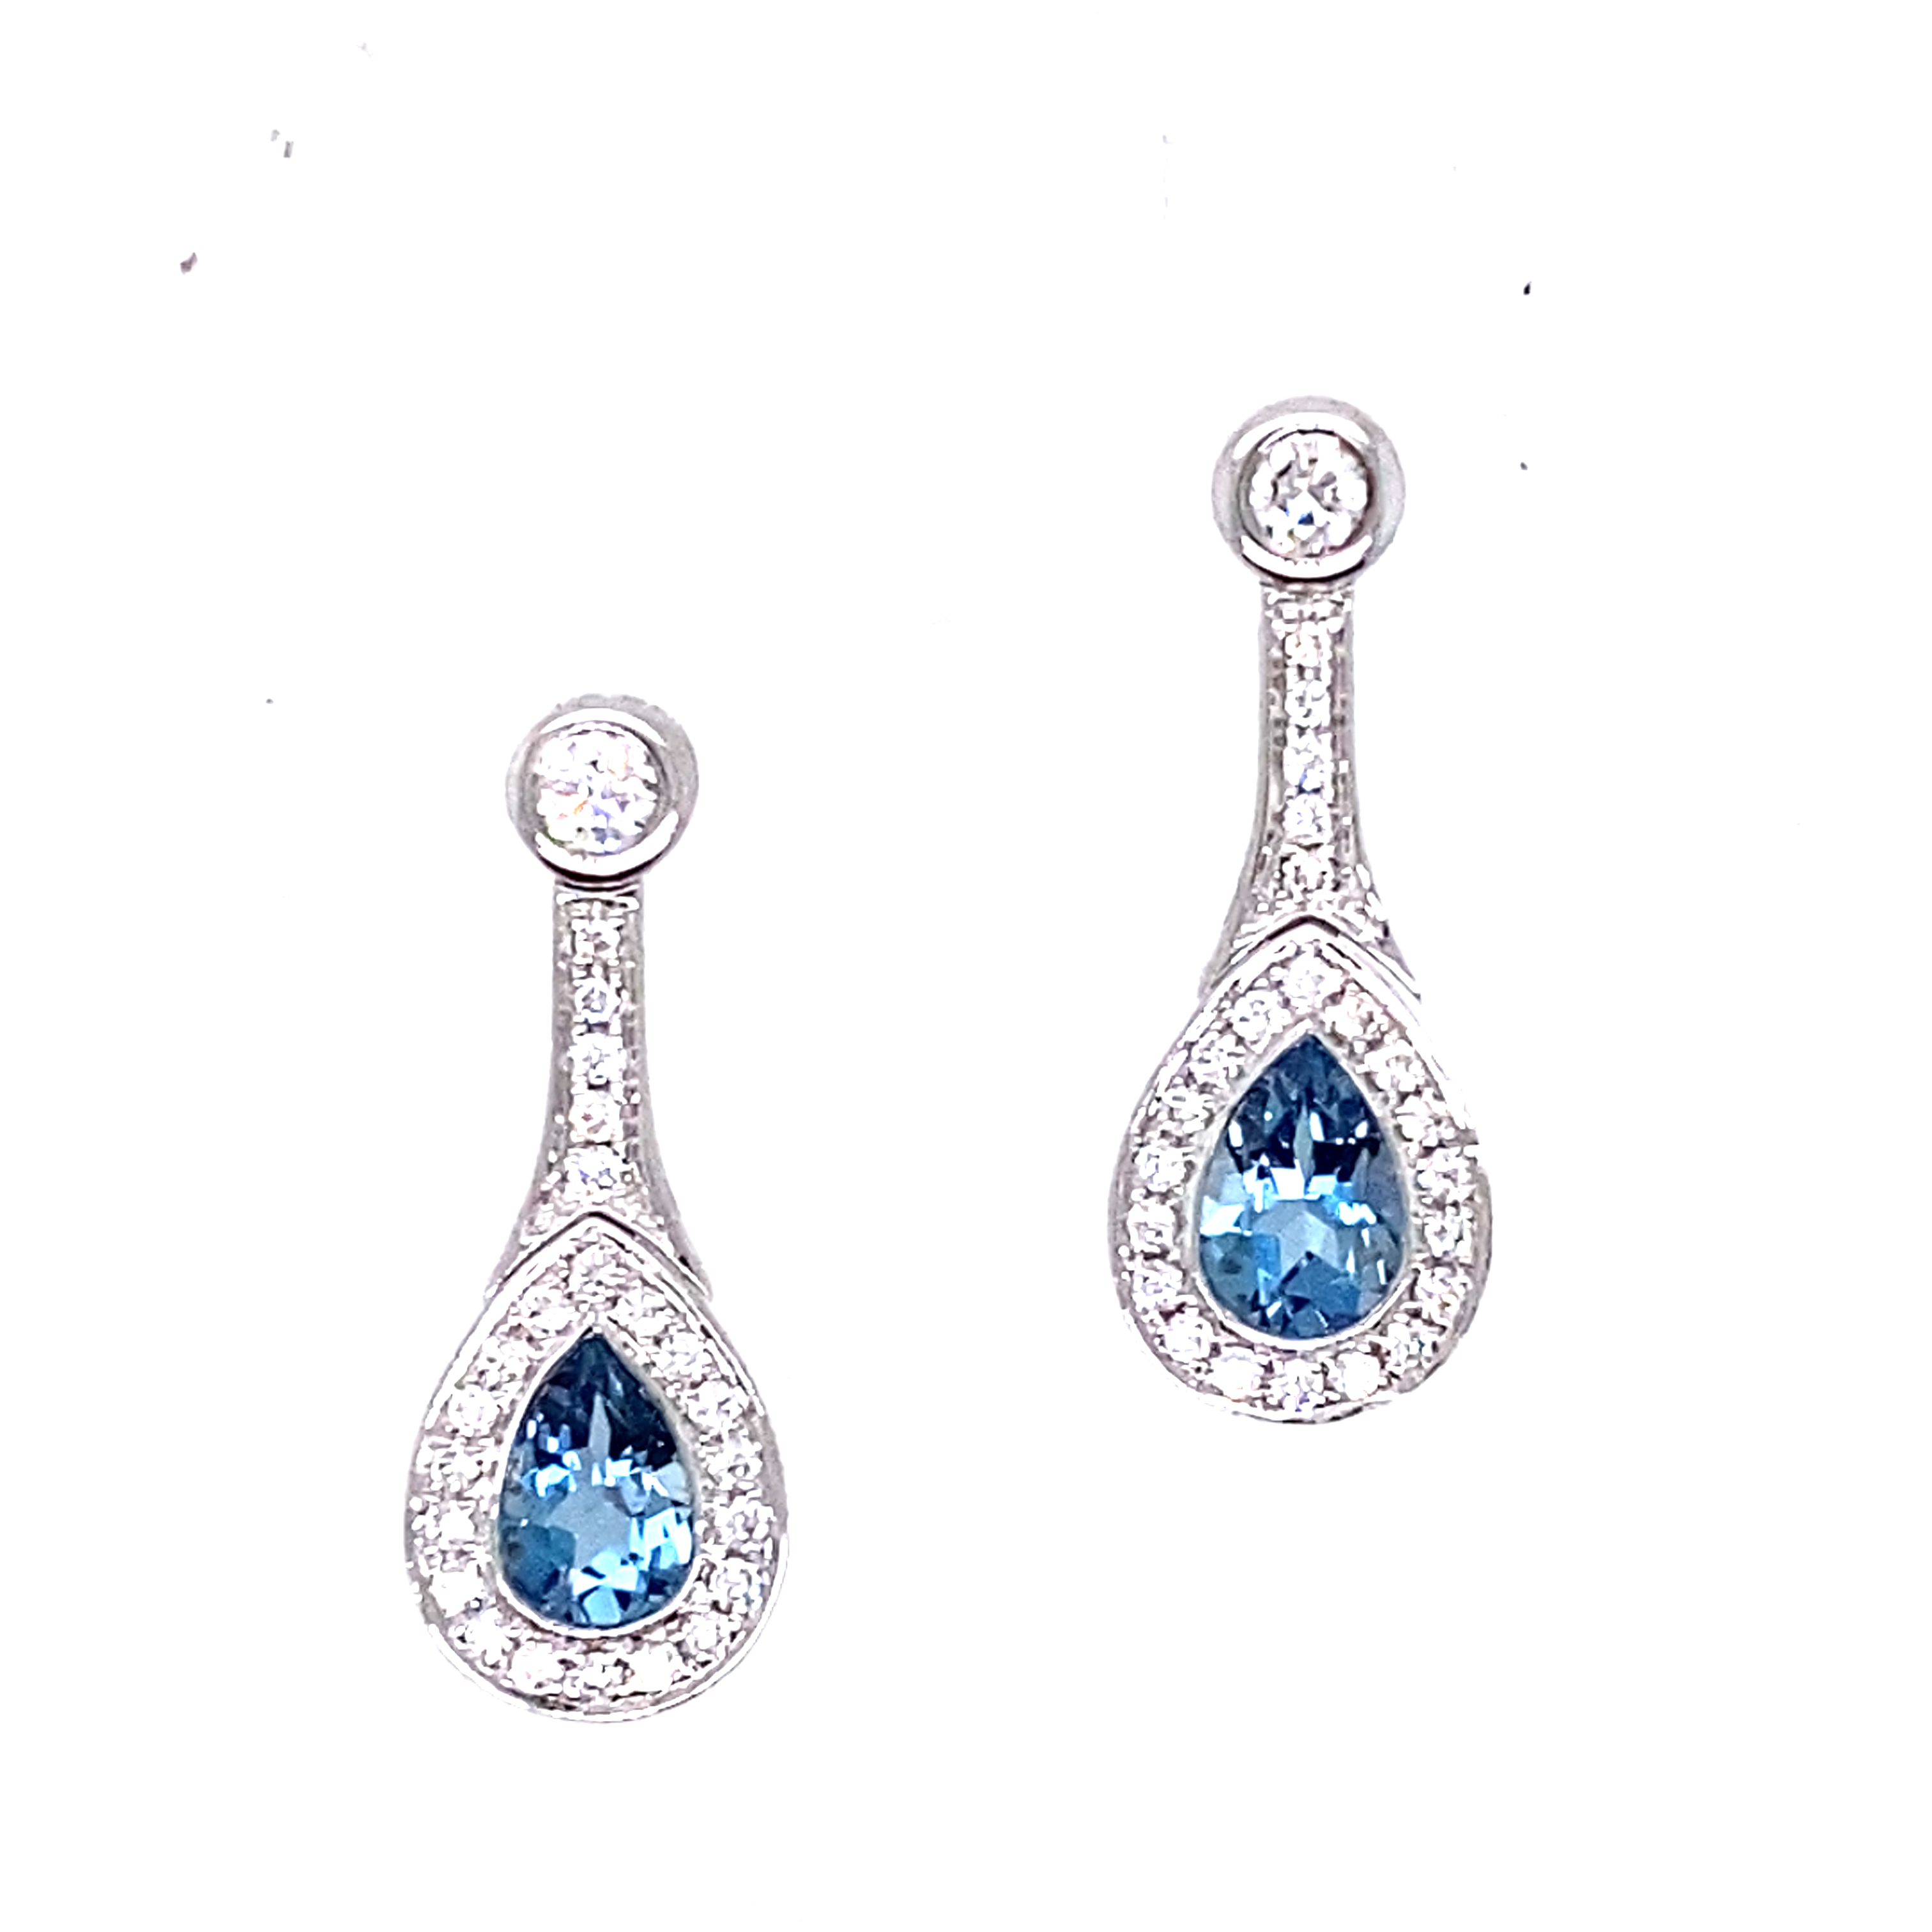 18ct white gold Aquamarine and Diamond dangly earrings